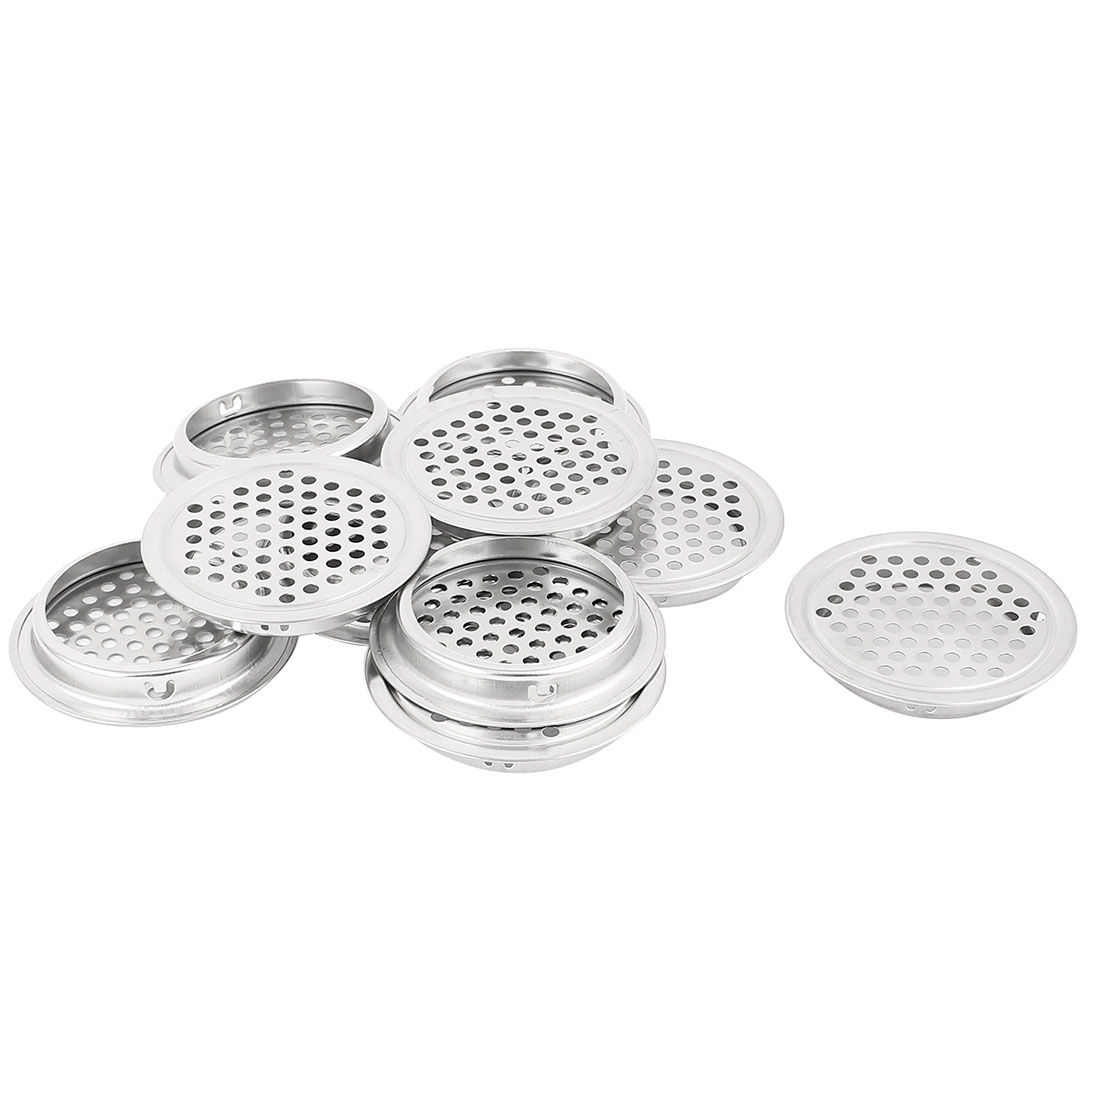 53mm Bottom Dia Mesh Panel Shoes Cupboard Cabinet Air Vent Louver Cover 10pcs